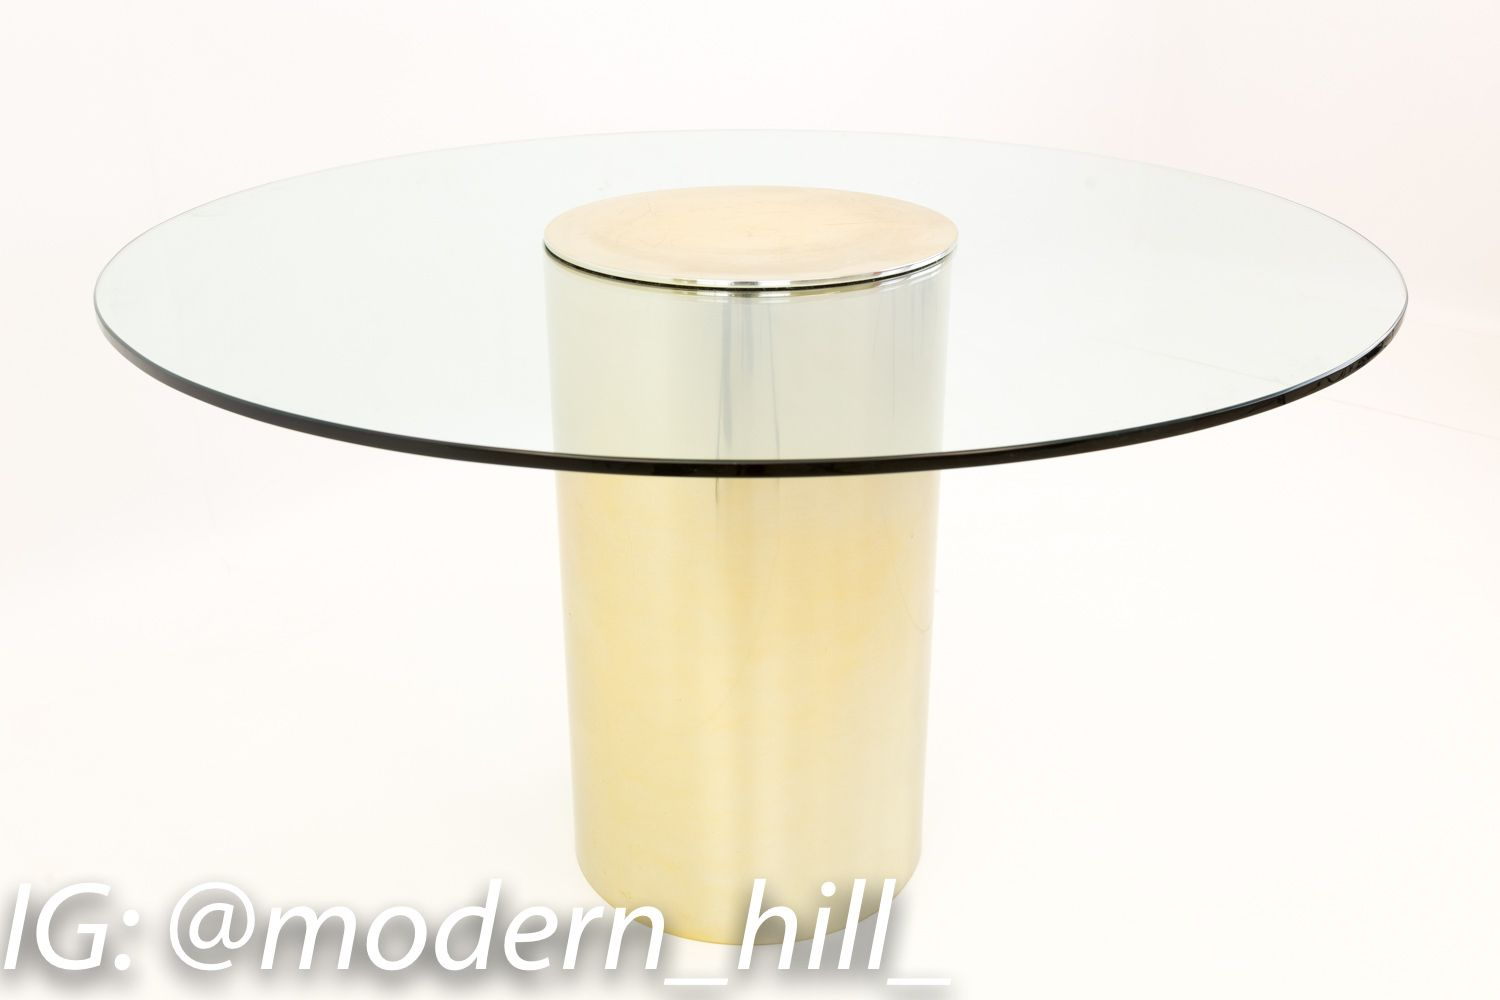 Paul Mayen For Habitat Brass And Glass Drum Dining Table Dining Table Dining Room Furniture Modern Mid Century Modern Dining Room